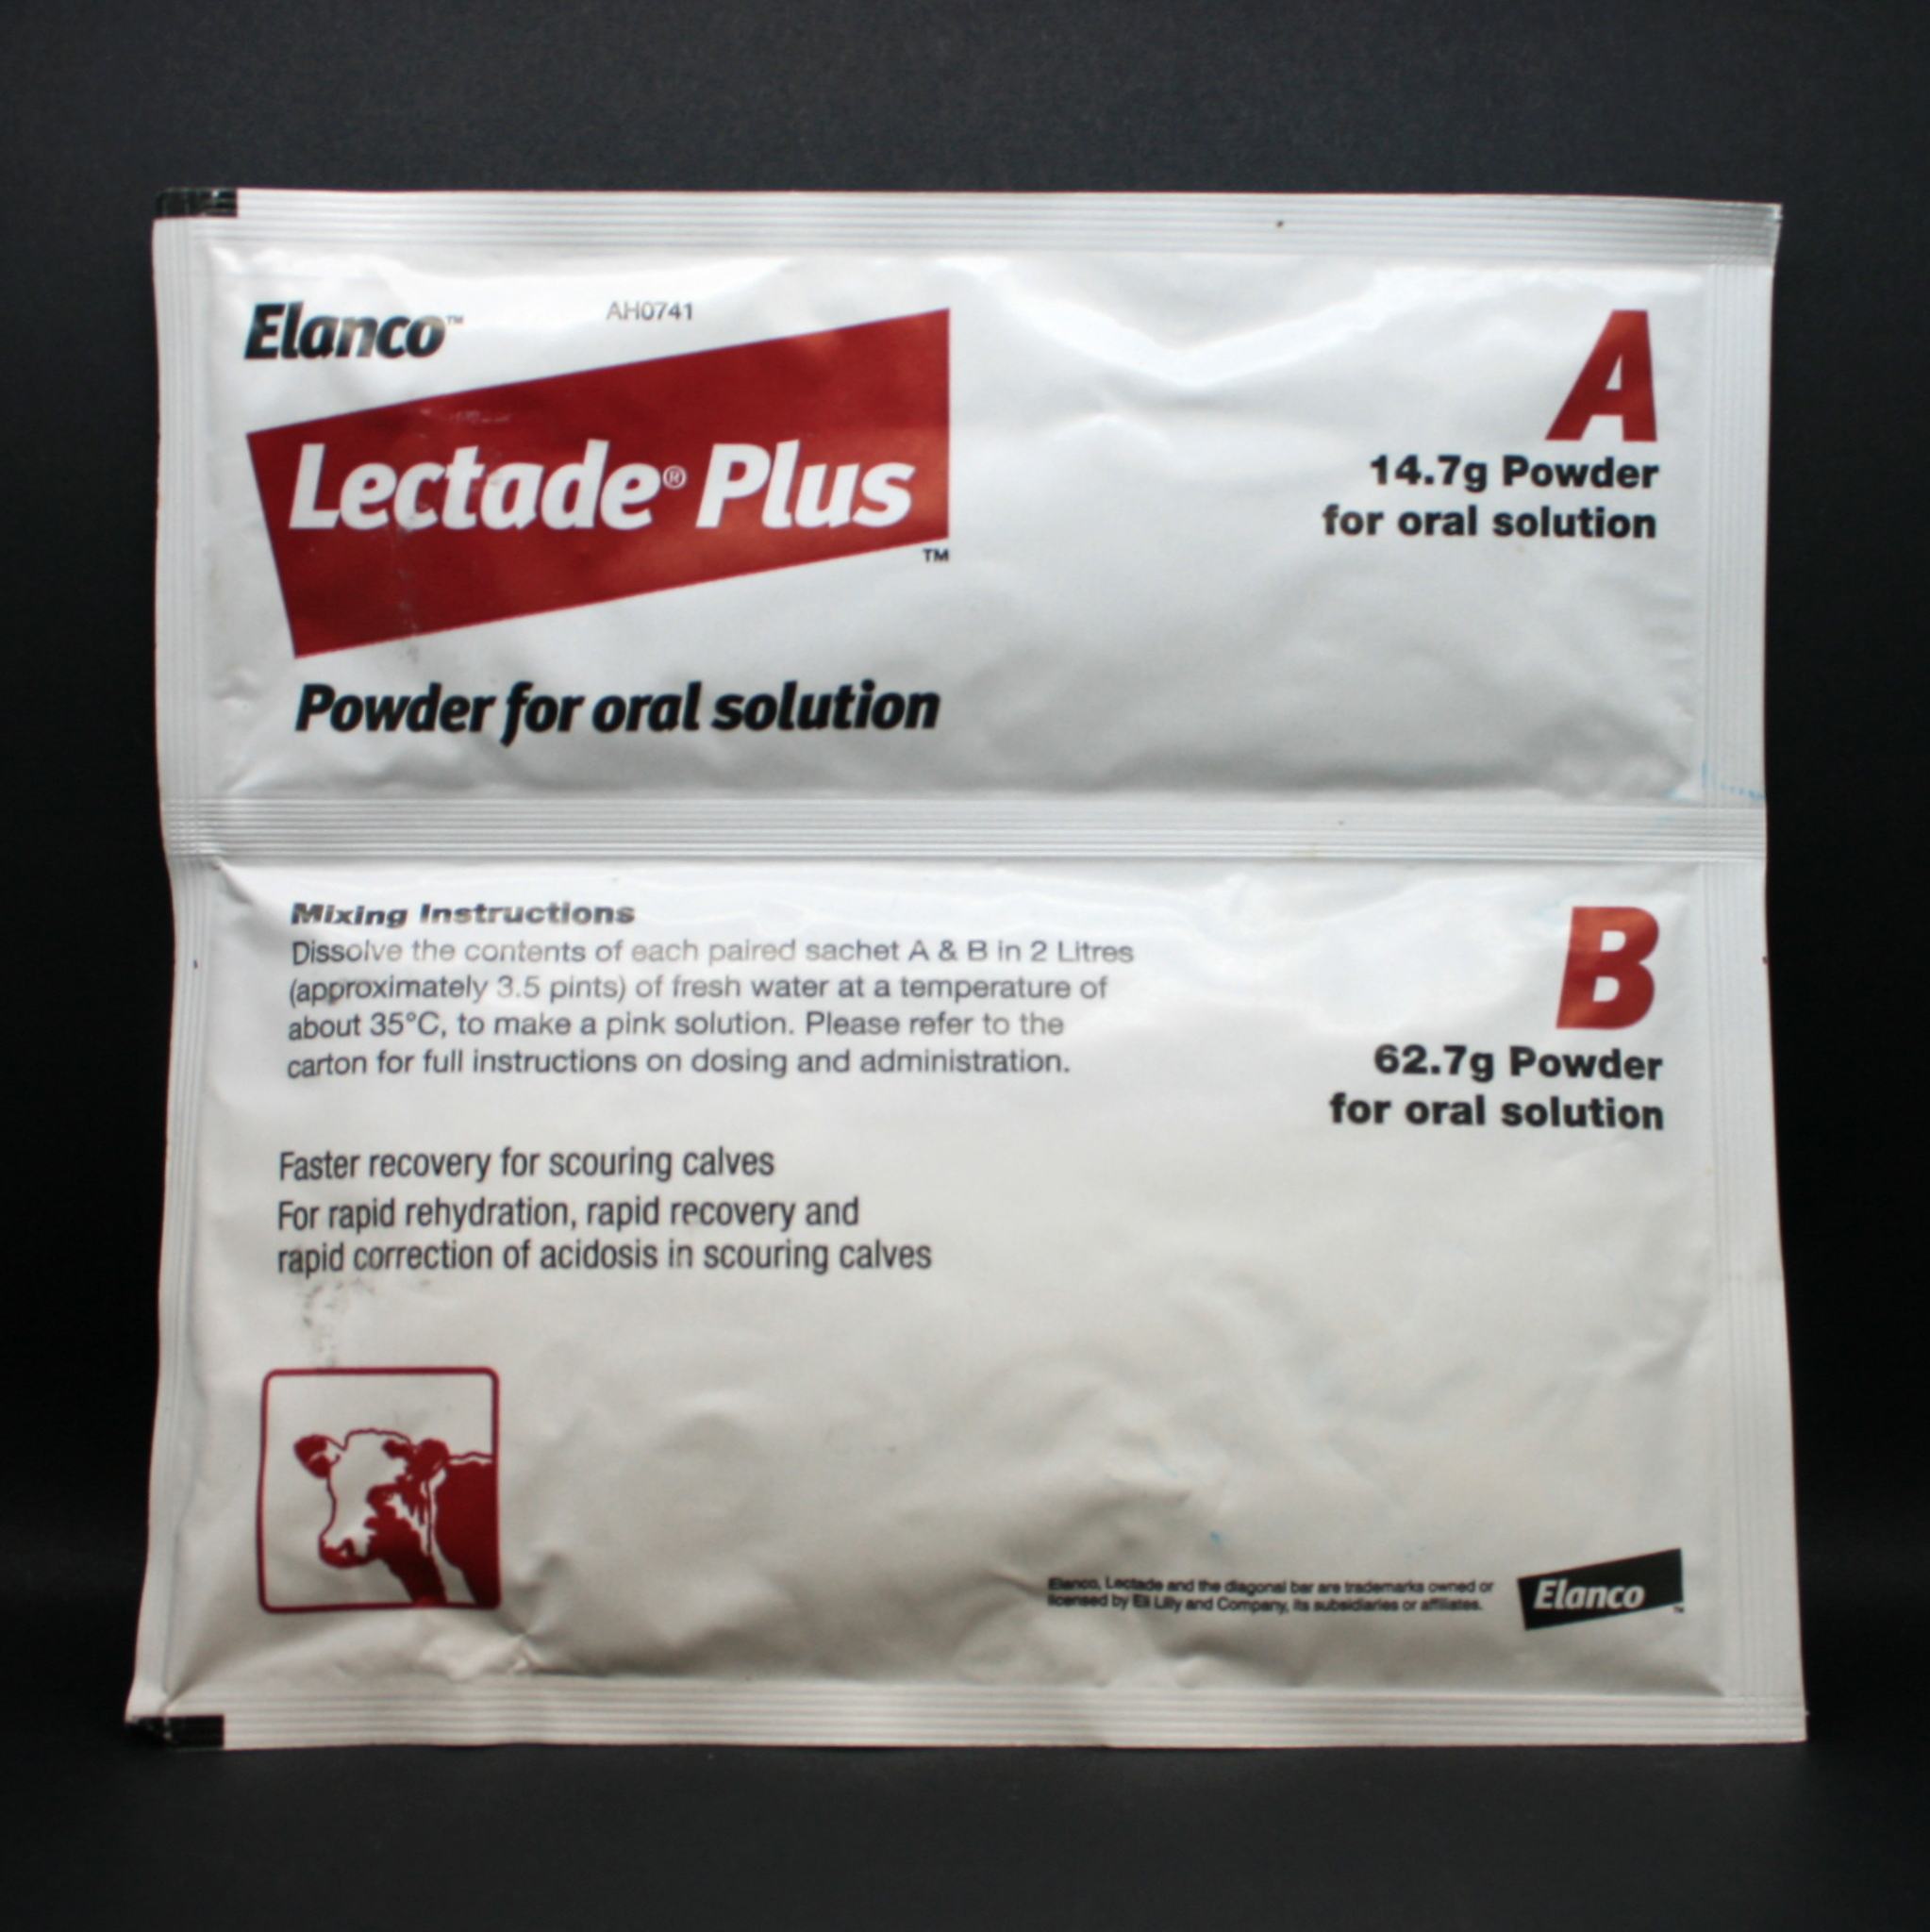 Lectade Plus Powder for Oral Solution